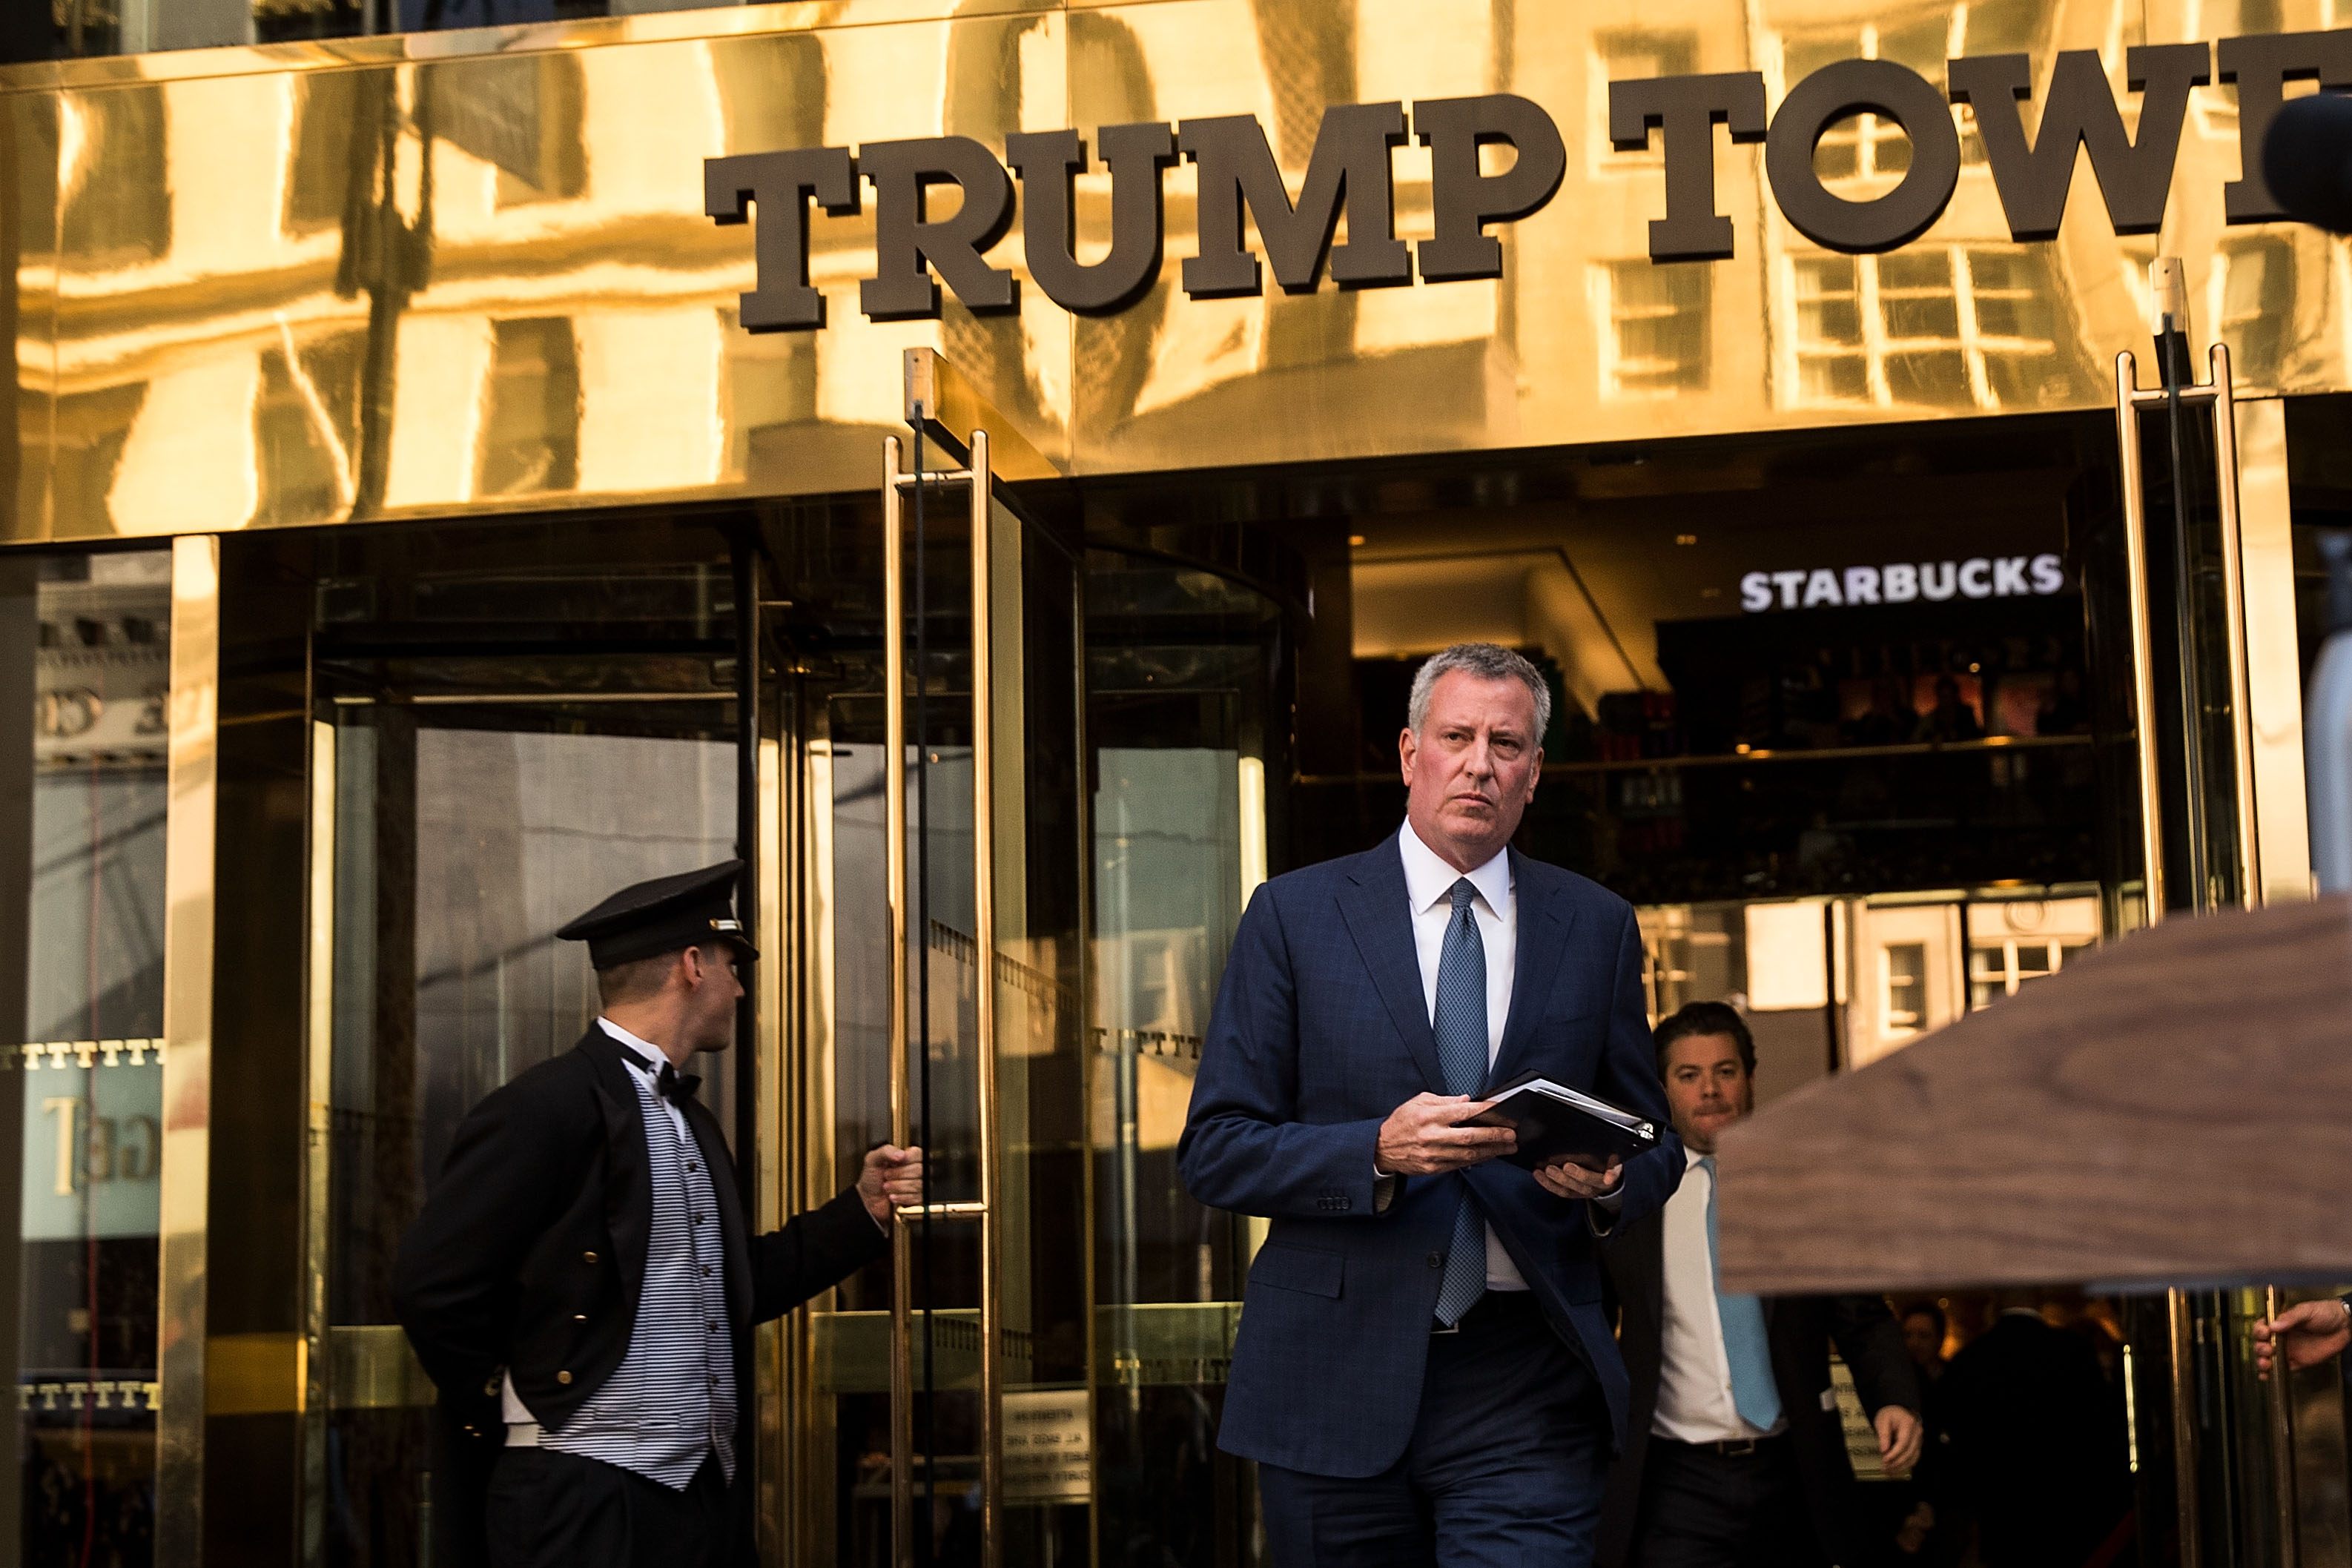 New York City mayor Bill de Blasio walks out of Trump Tower to speak to the press after his meeting with president-elect Donald Trump in New York City on Nov. 16, 2016.